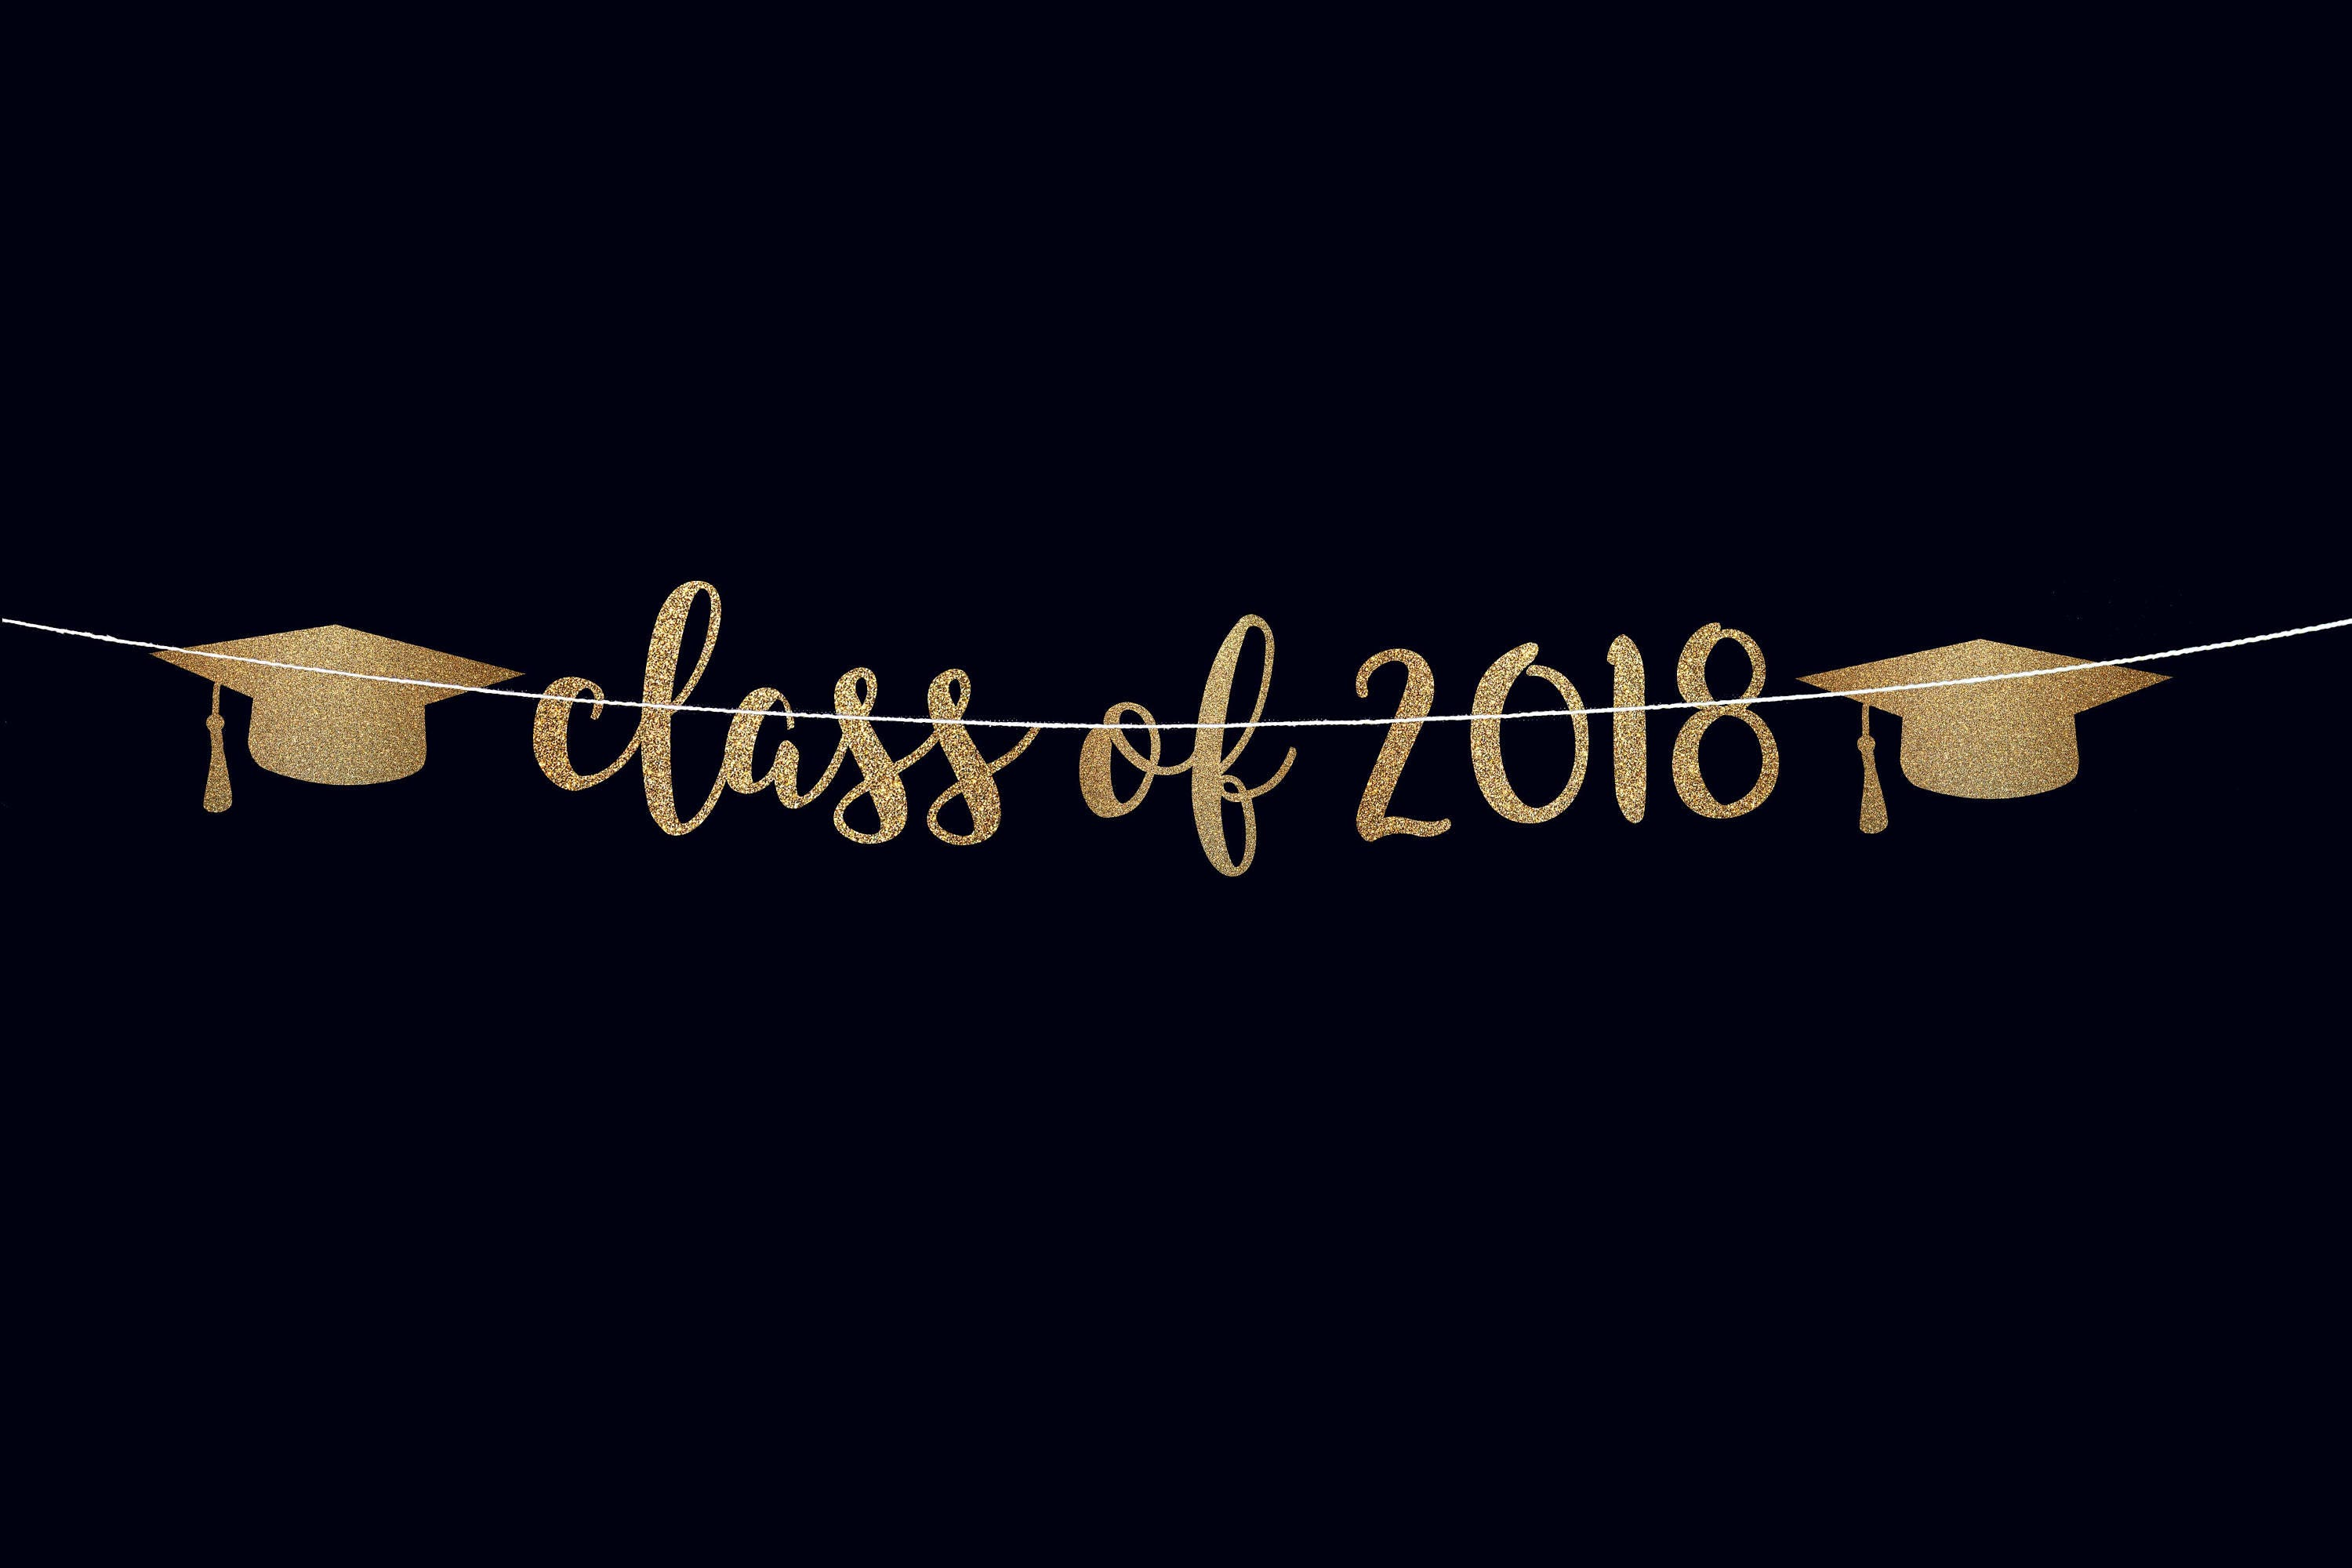 class of 2018 banner graduation decor graduation banner grad etsy